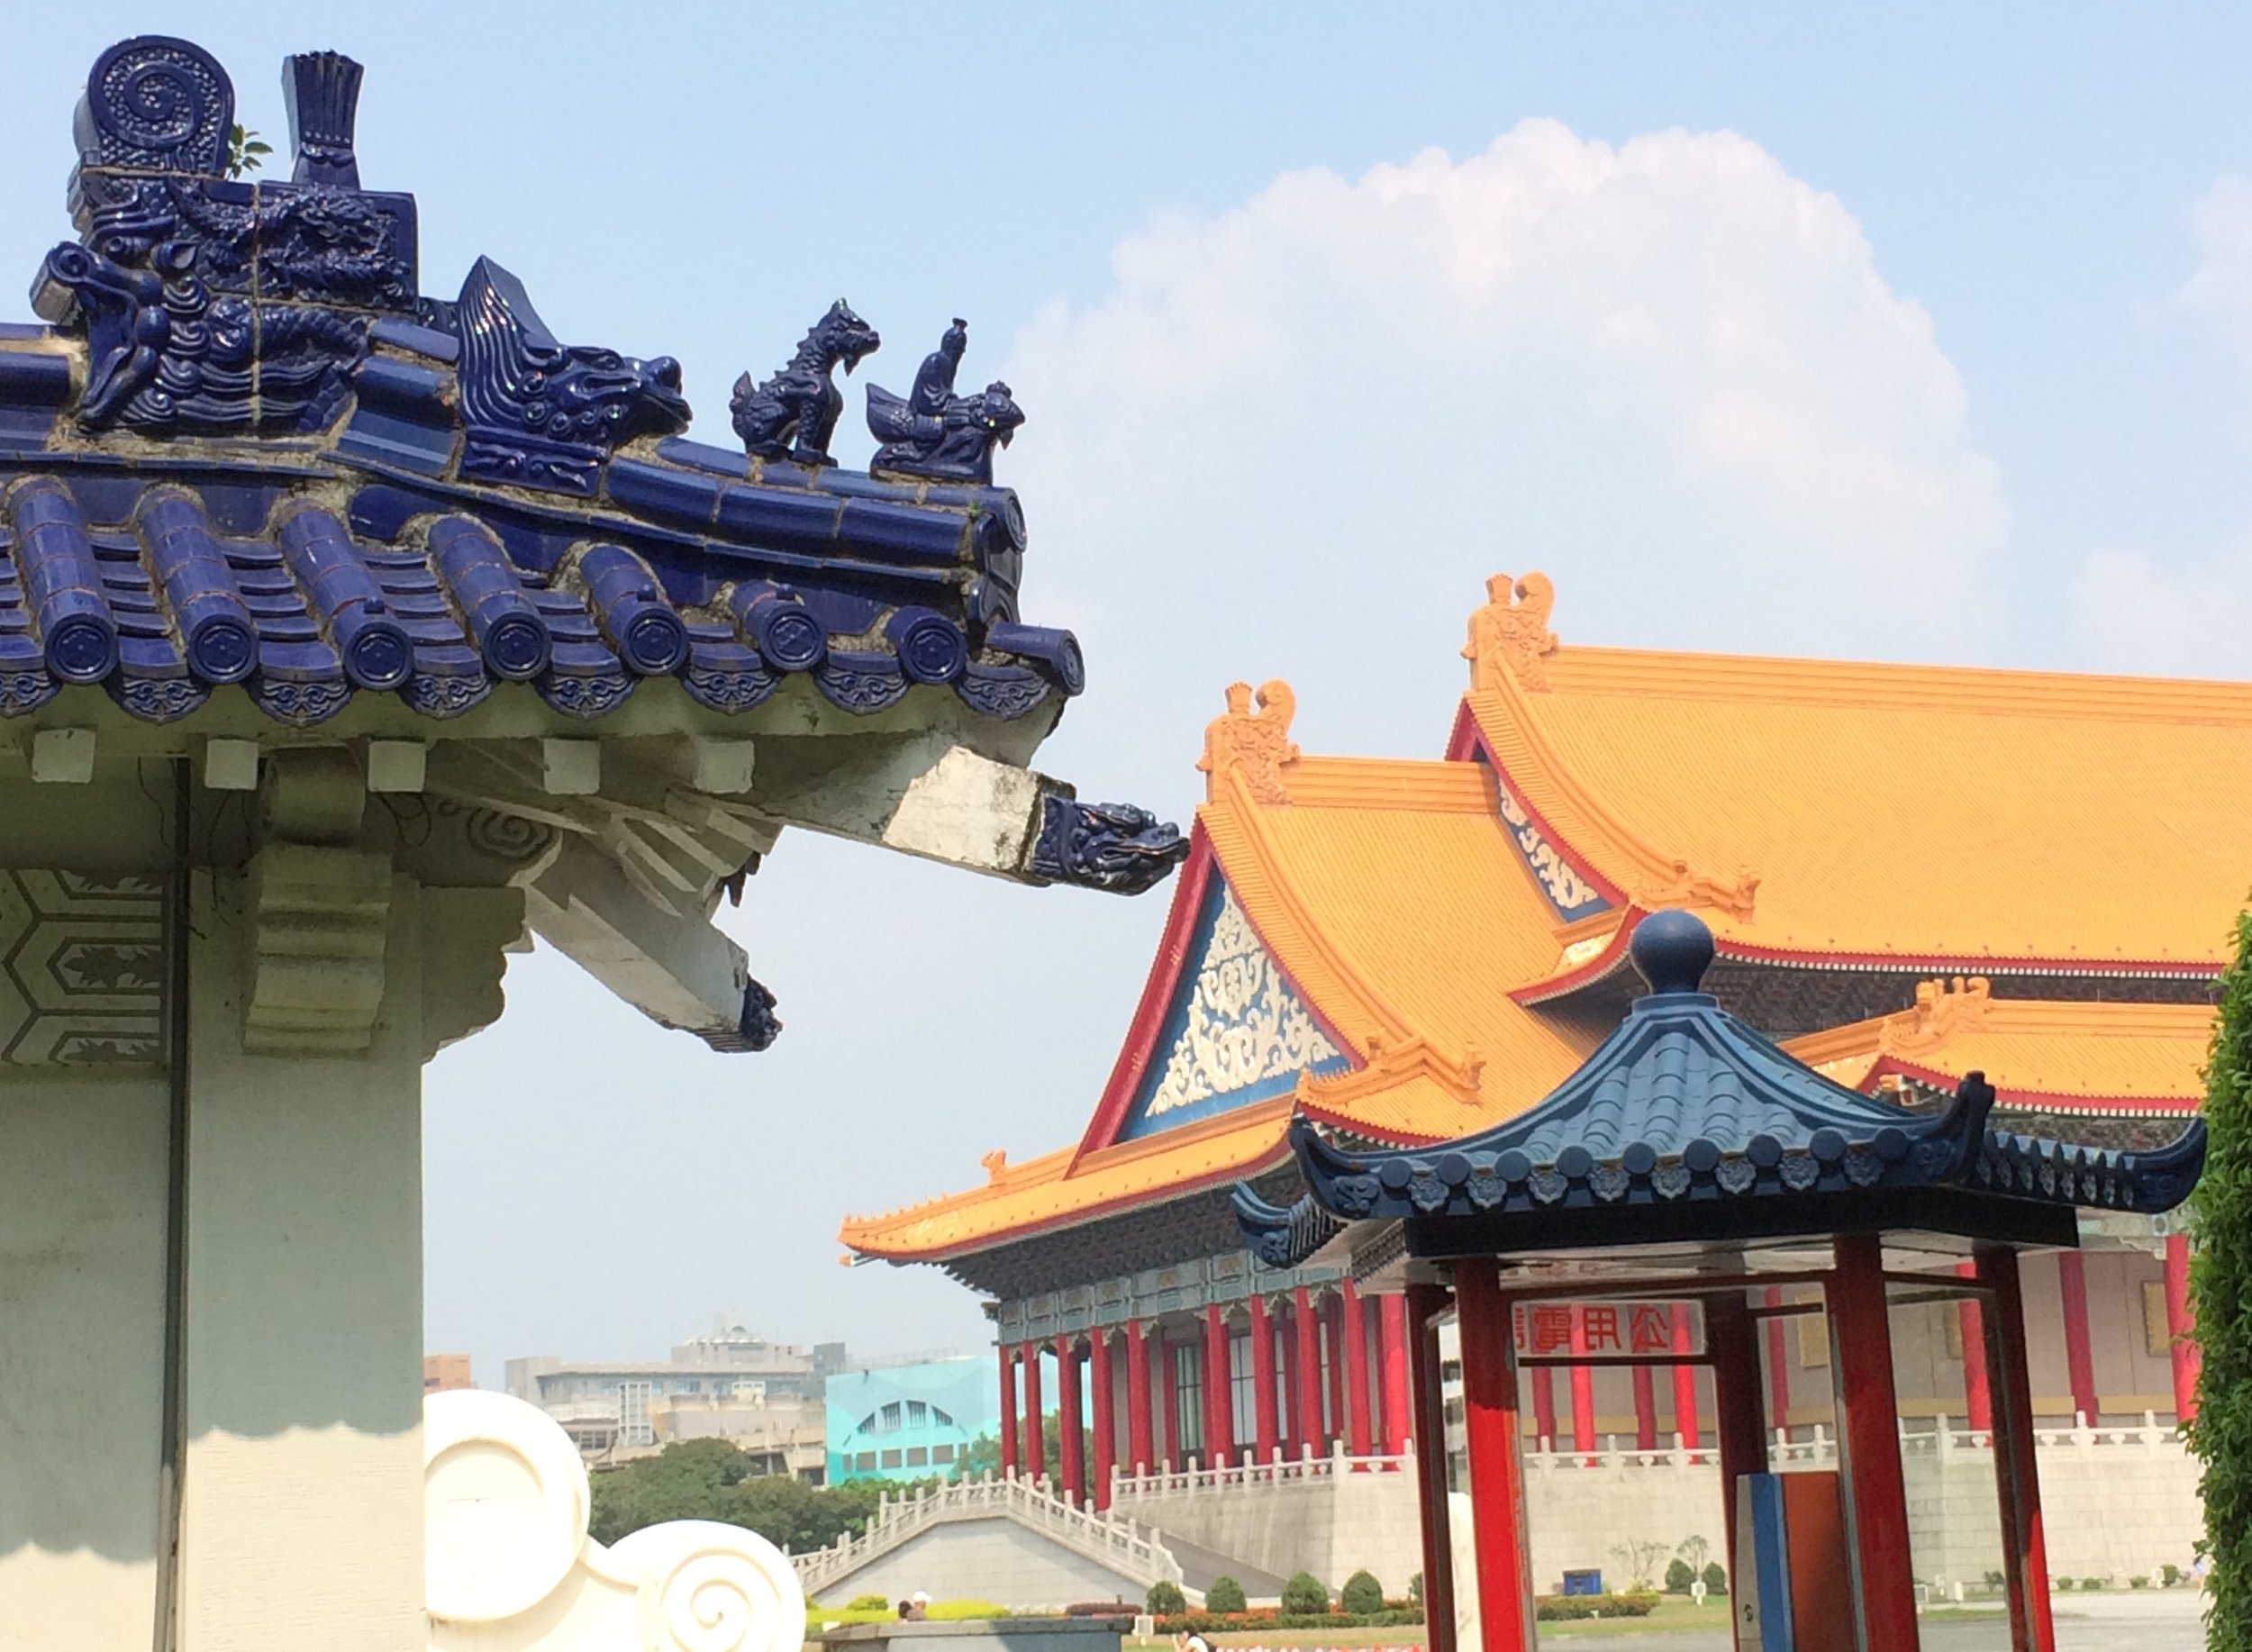 Traditional ceramic roof ornaments at the Chiang Kai-Shek Memorial in Taipei